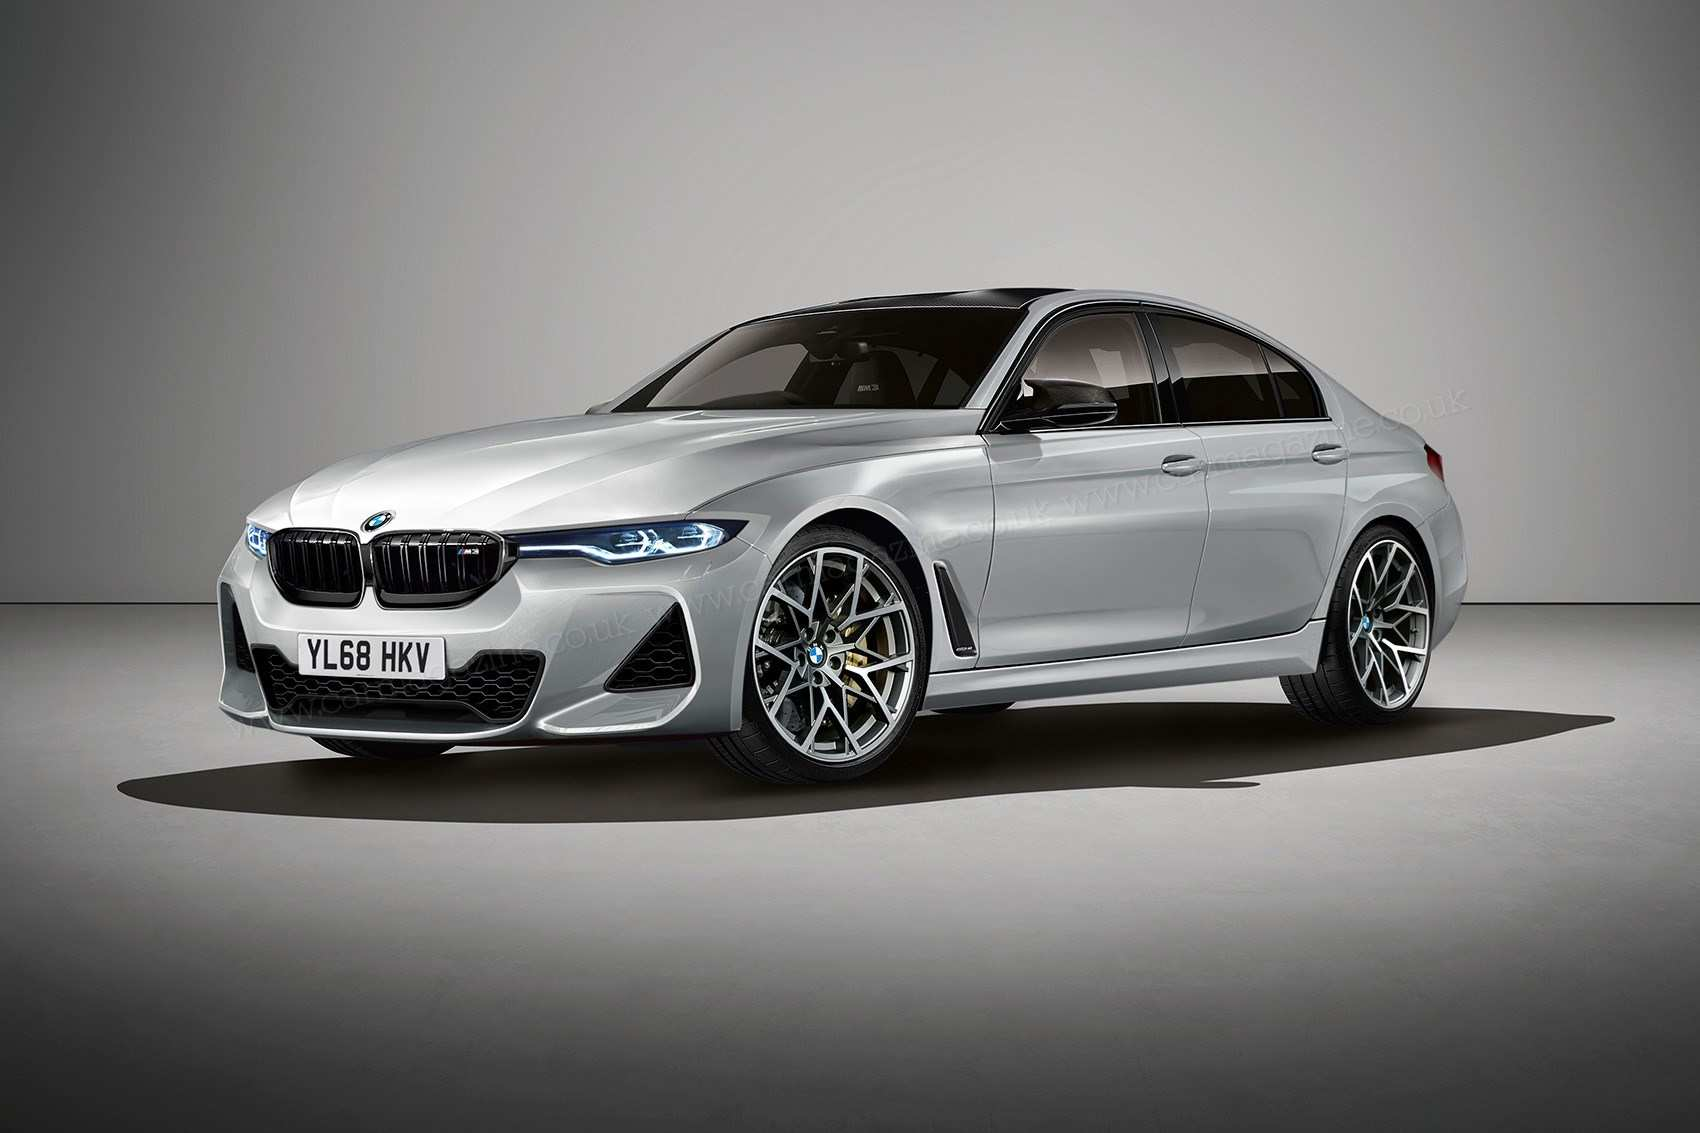 78 Best Review Bmw Cars 2020 Redesign for Bmw Cars 2020